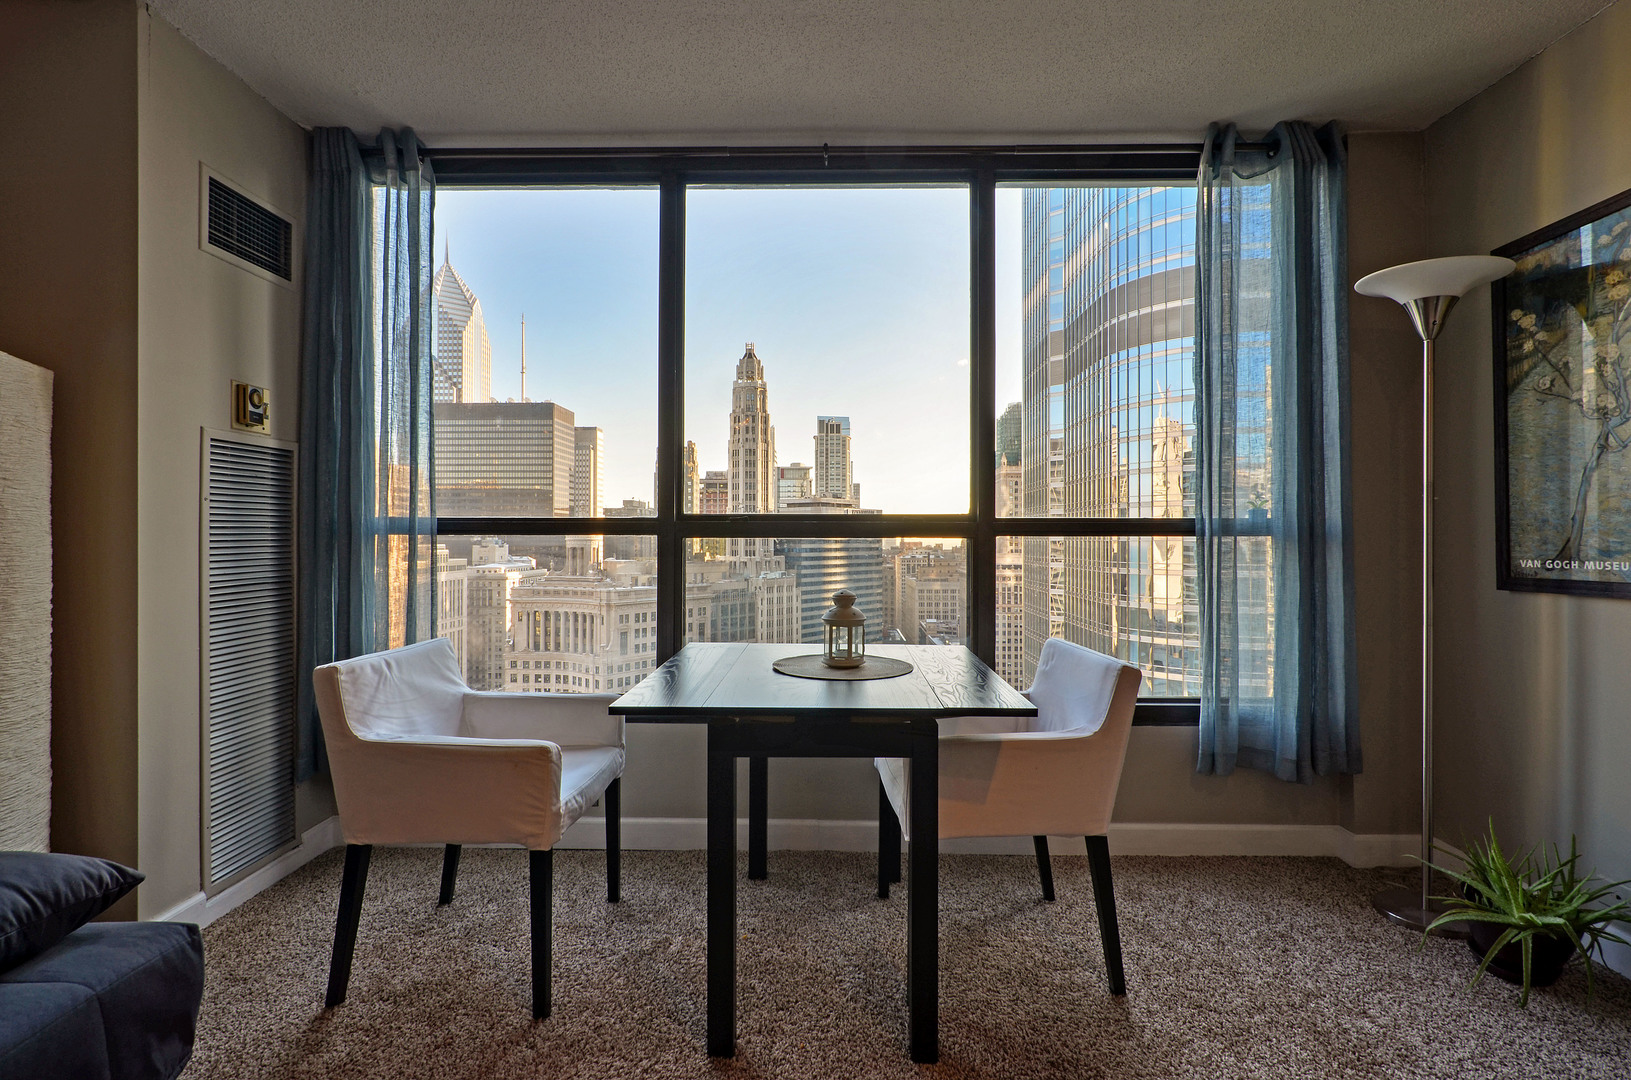 405 NORTH WABASH AVENUE #3106, CHICAGO, IL 60611  Photo 3